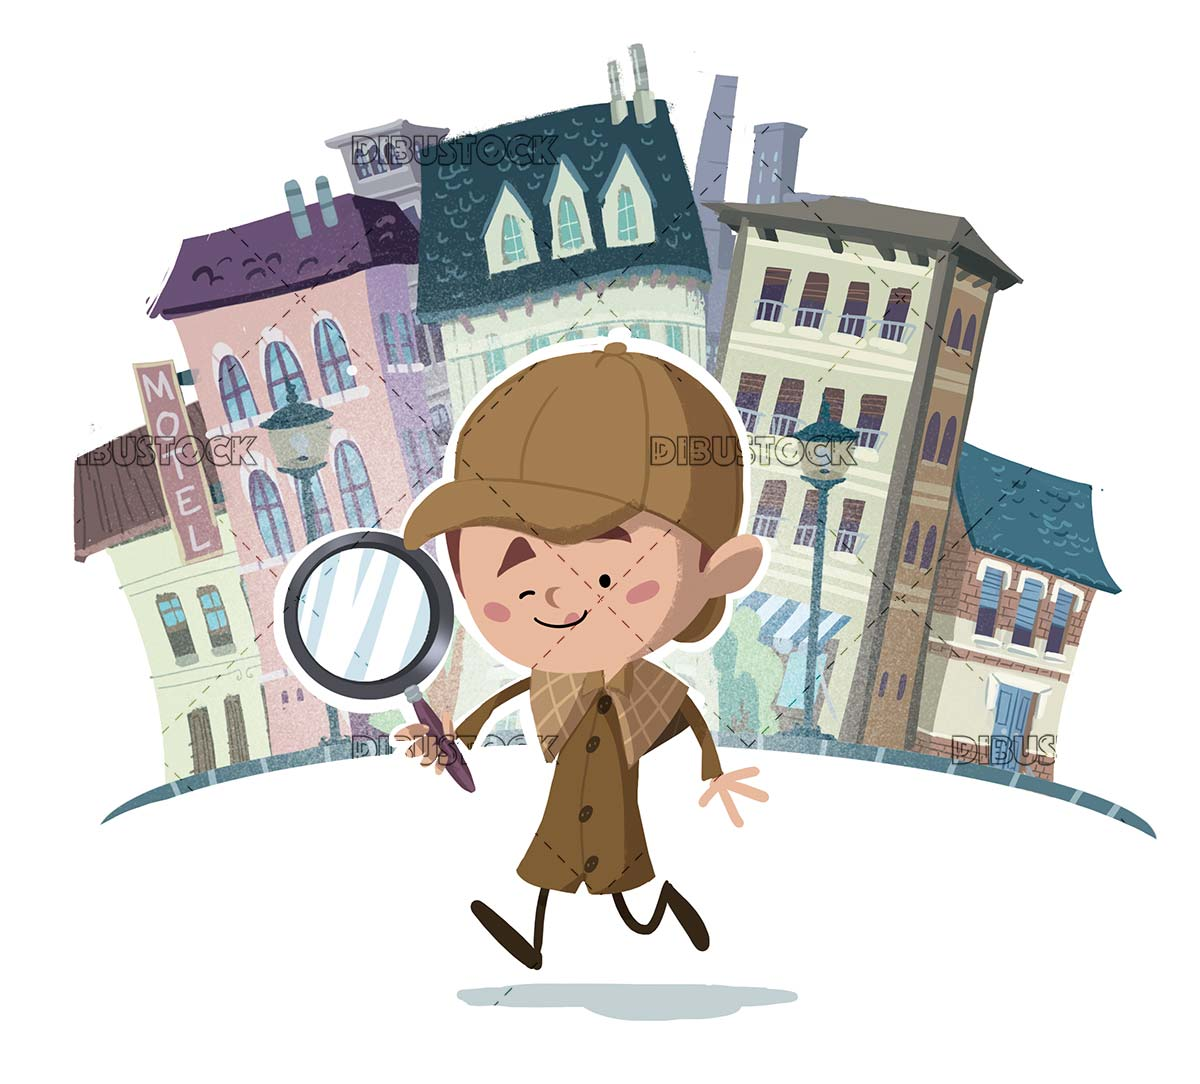 Detective boy with magnifying glass investigating the city